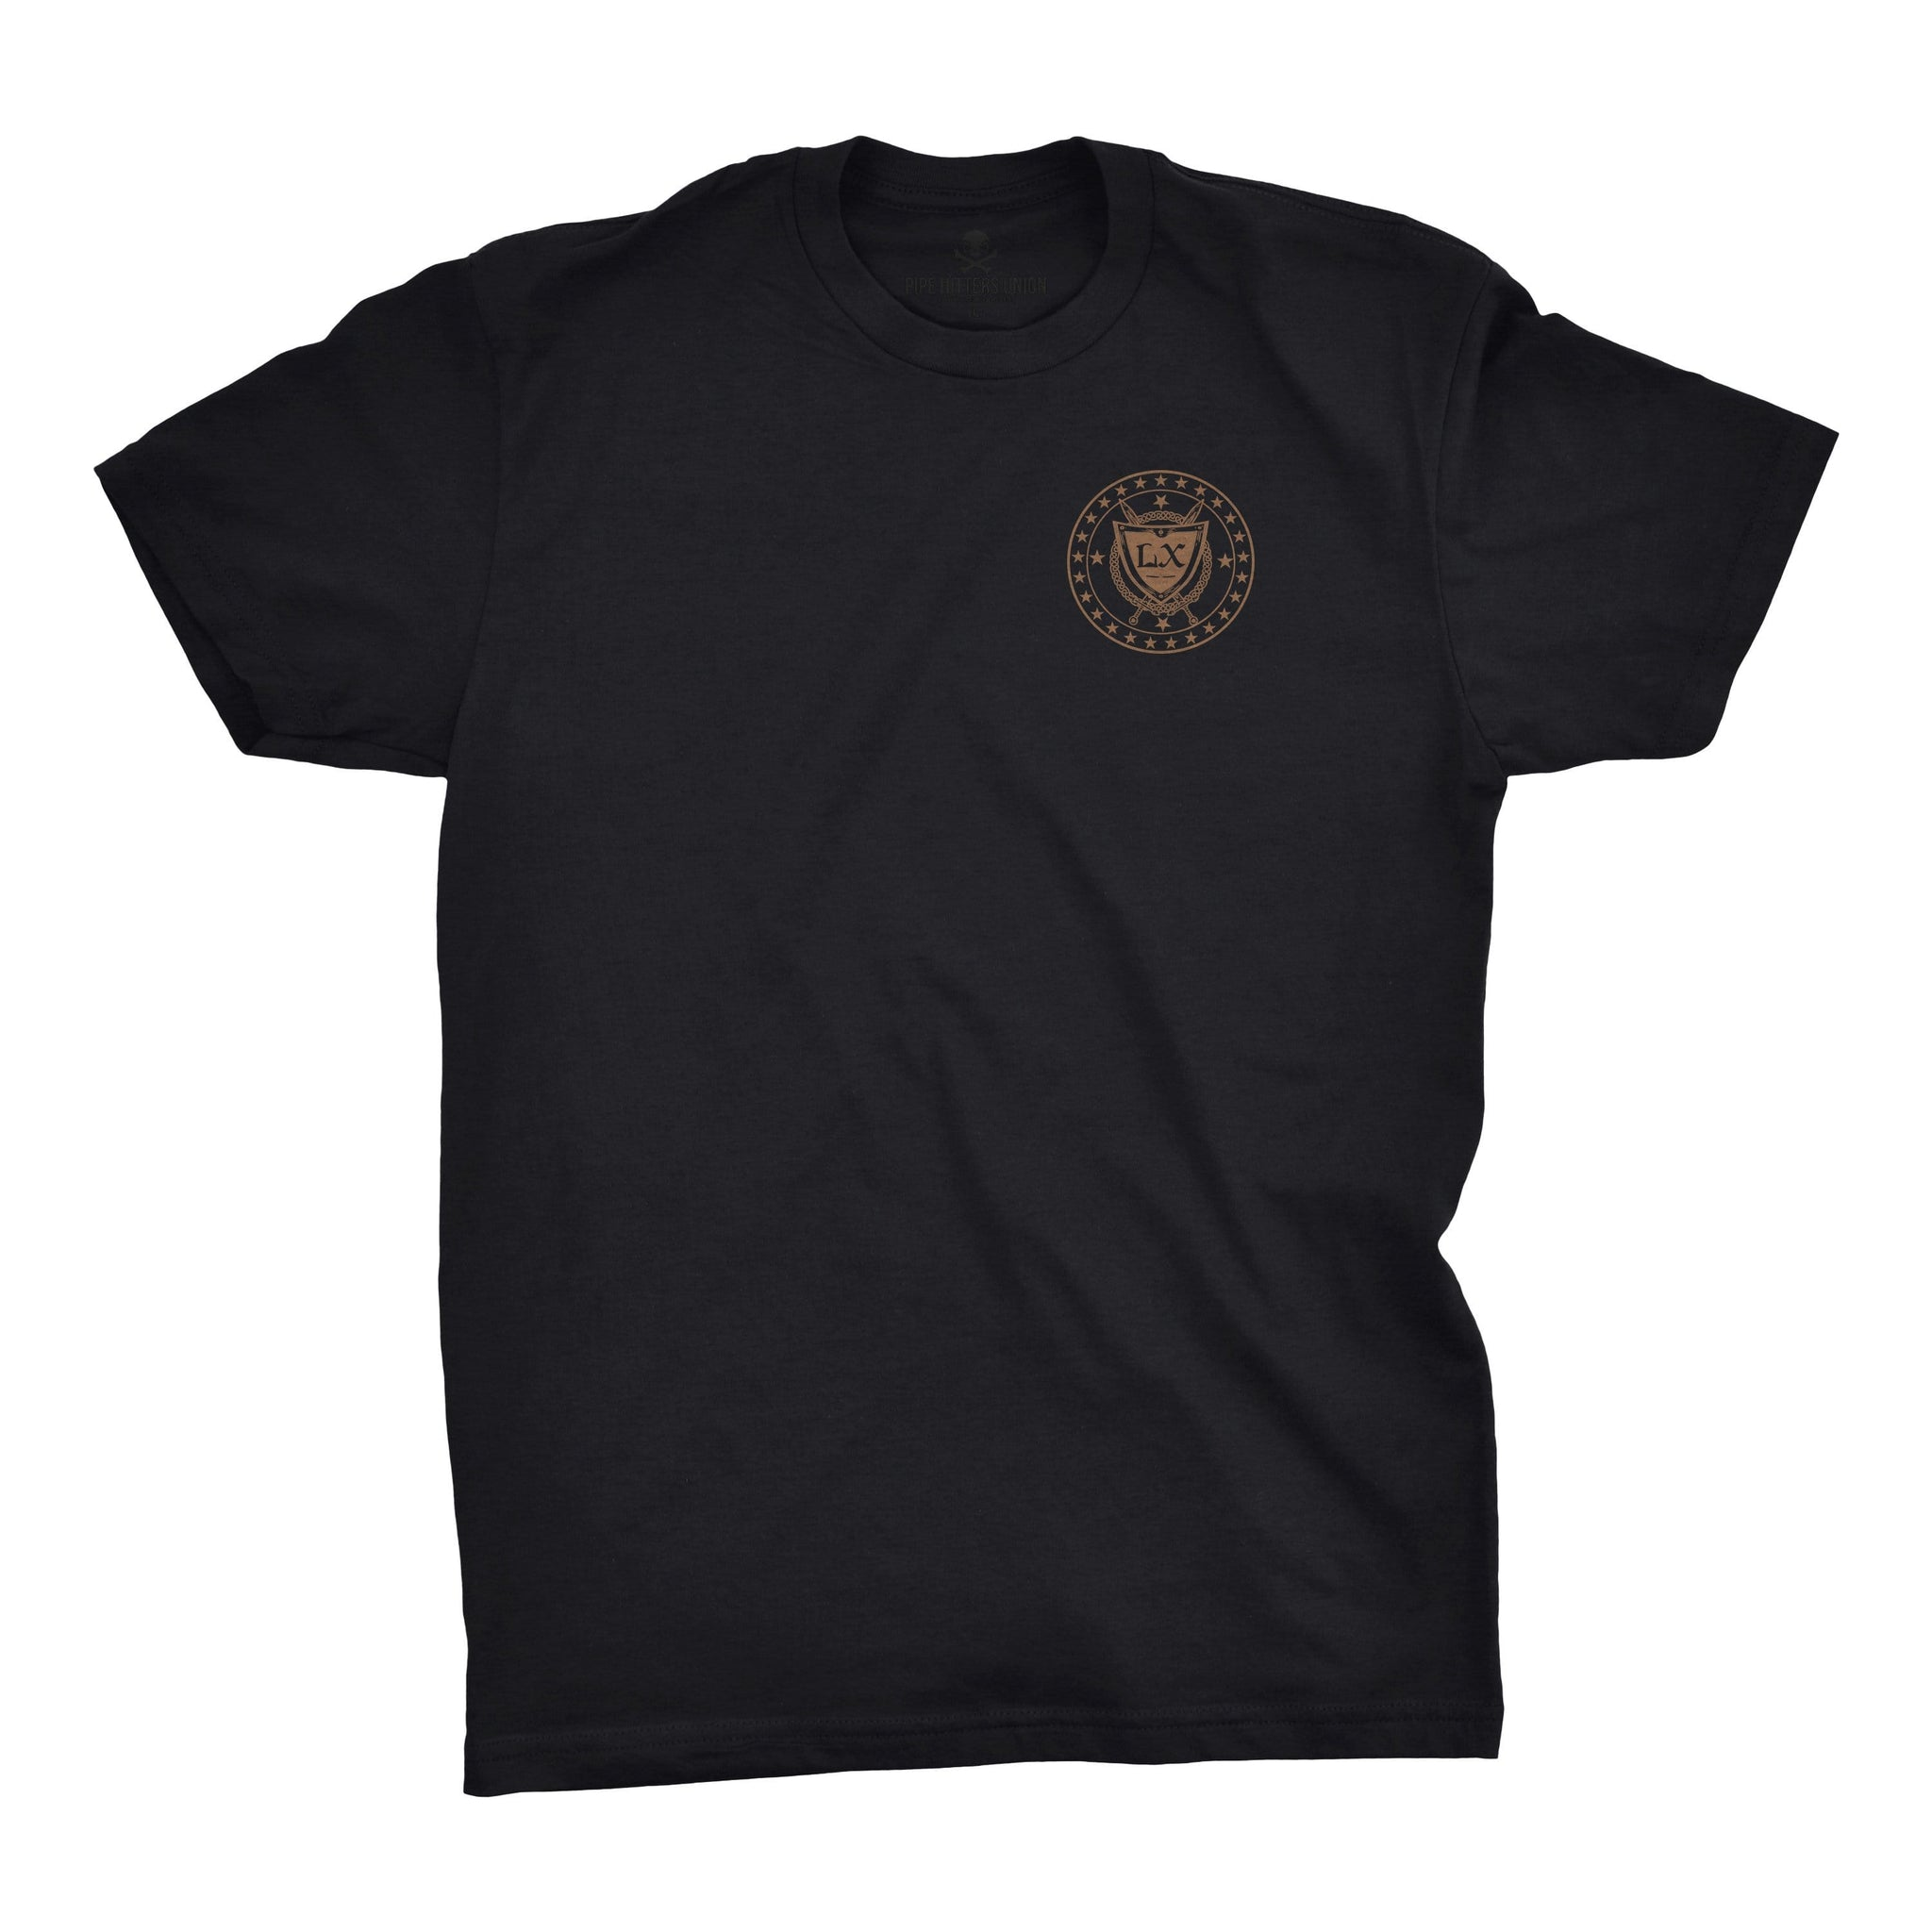 PHUMC Alewar Chapter Tee - Black - T-Shirts - Pipe Hitters Union